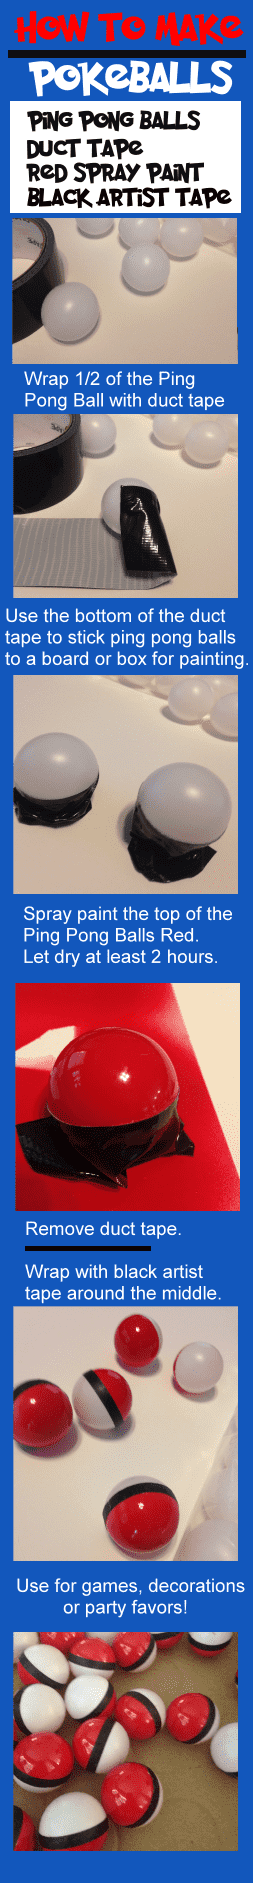 Do it yourself pokeballs